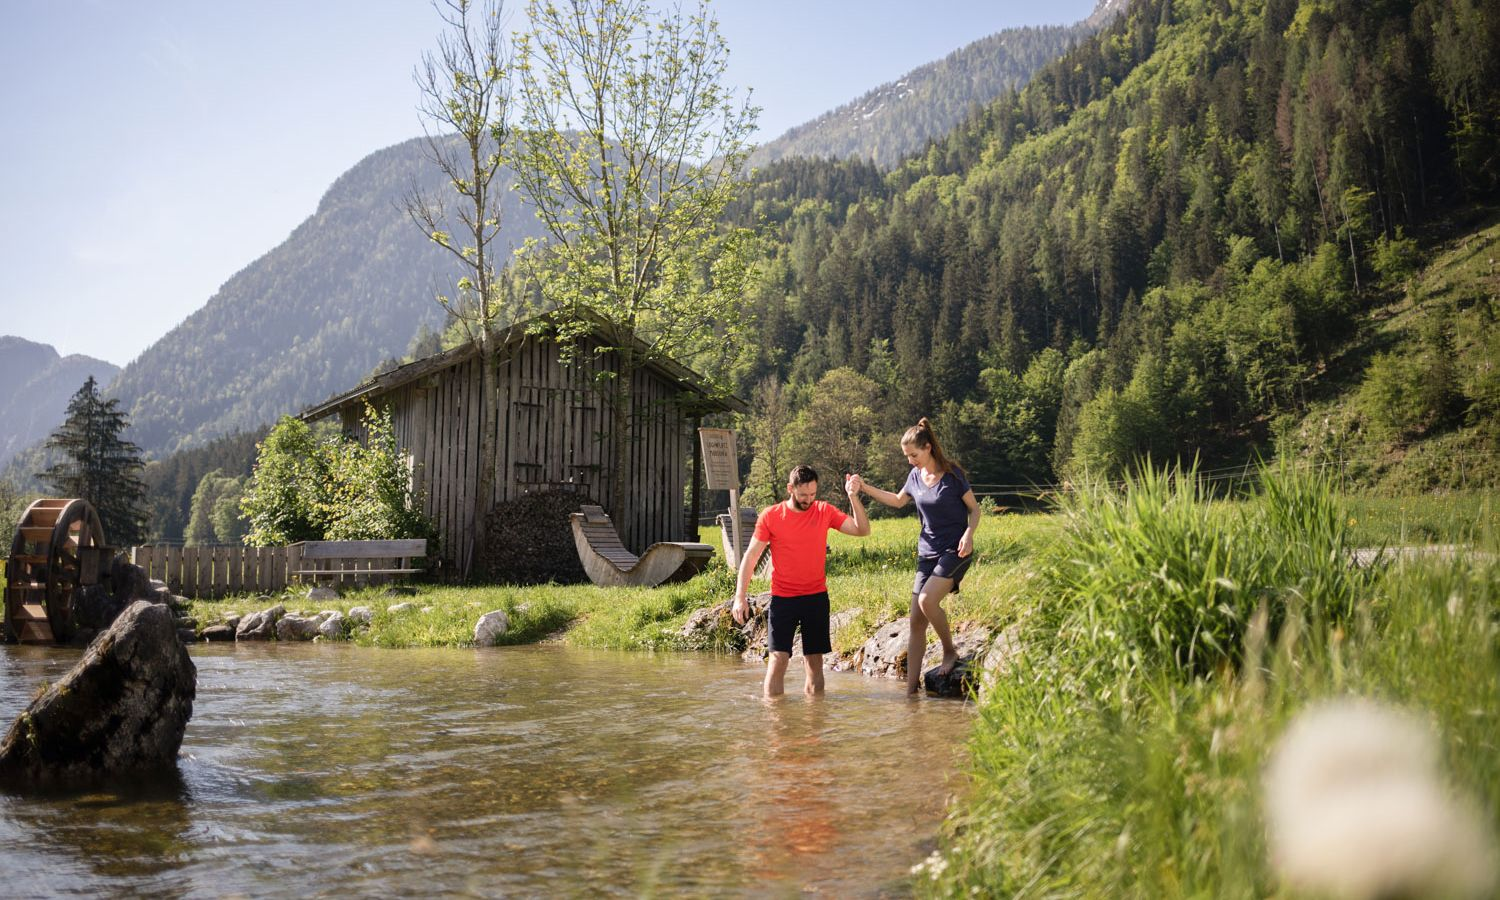 Summer vacation in the mountains – Holiday at st martin chalets